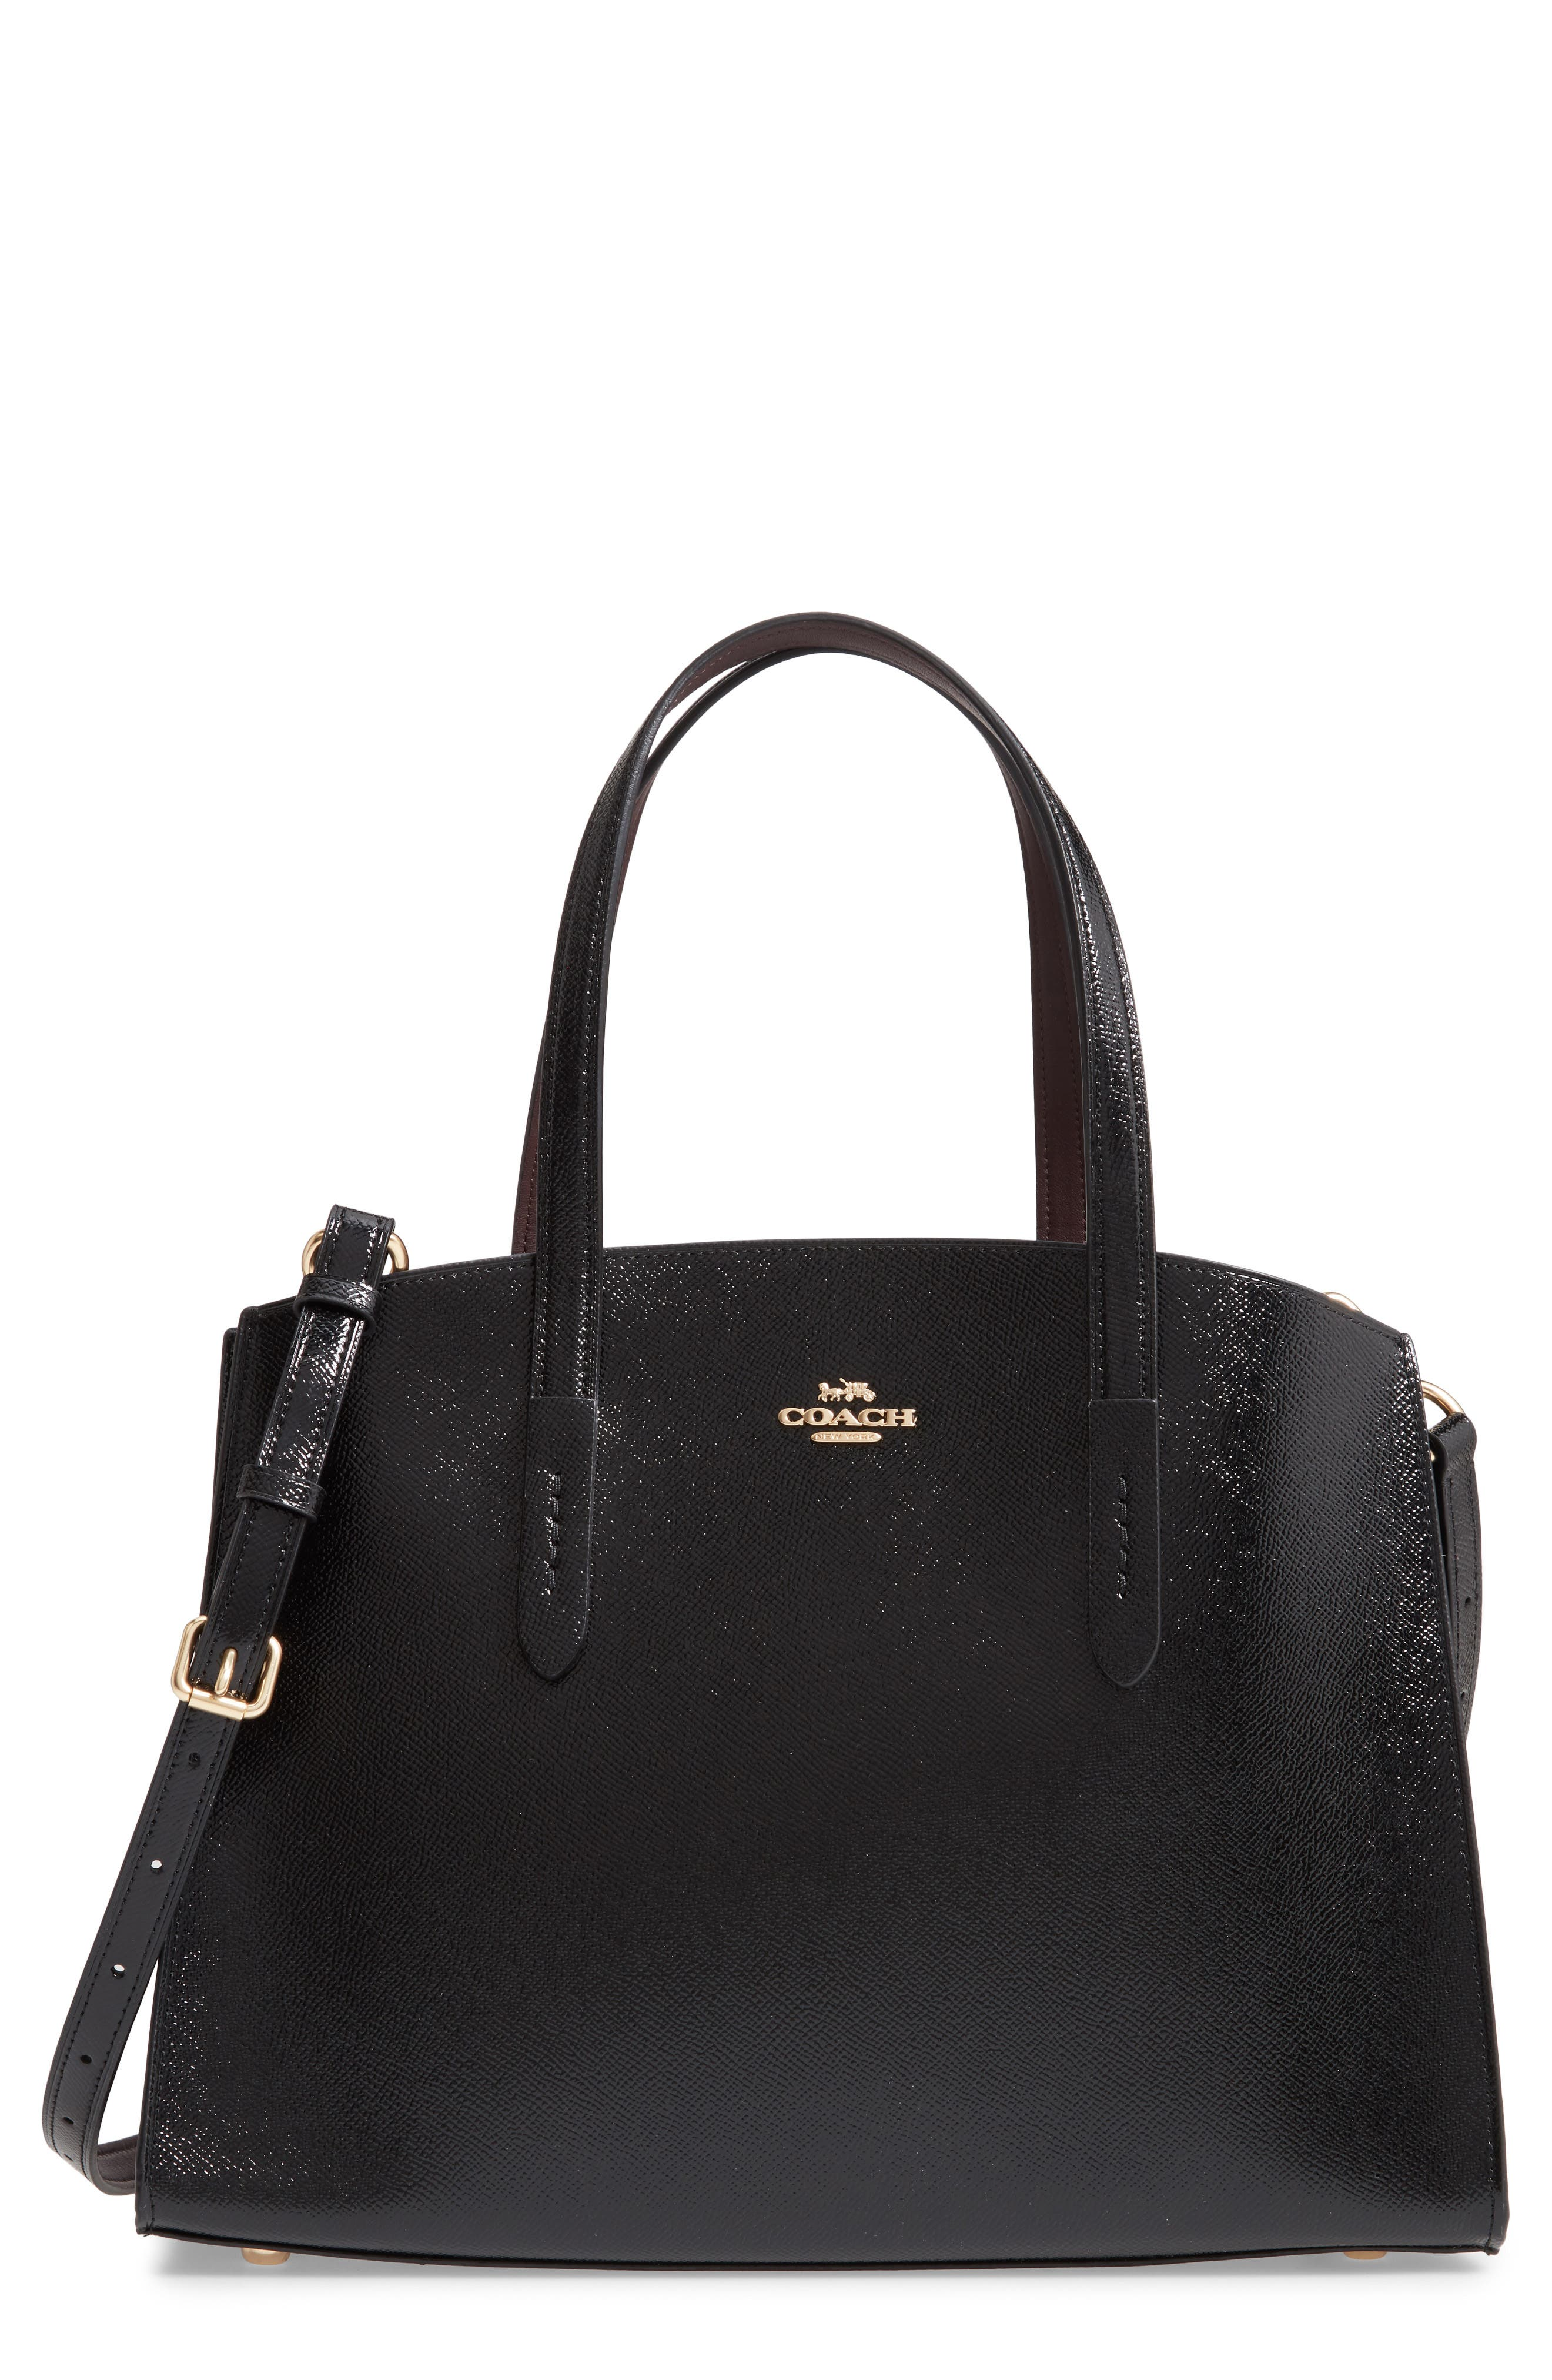 COACH,                             Charlie Patent Leather Tote,                             Main thumbnail 1, color,                             BLACK